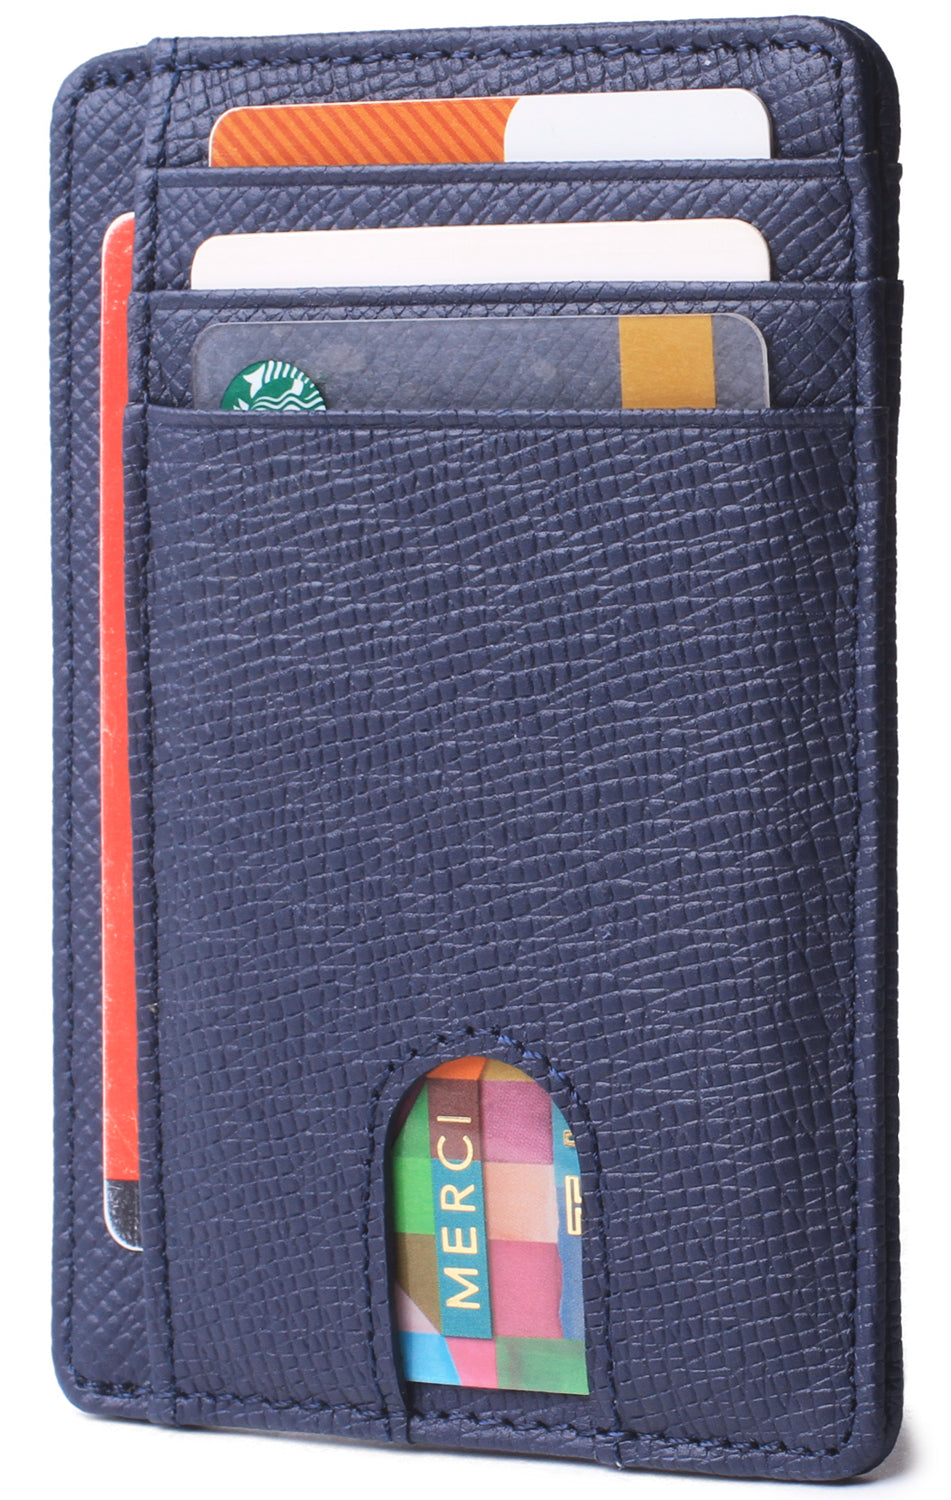 Slim Minimalist Front Pocket RFID Blocking Leather Wallets for Men & Women Blue - Borgasets